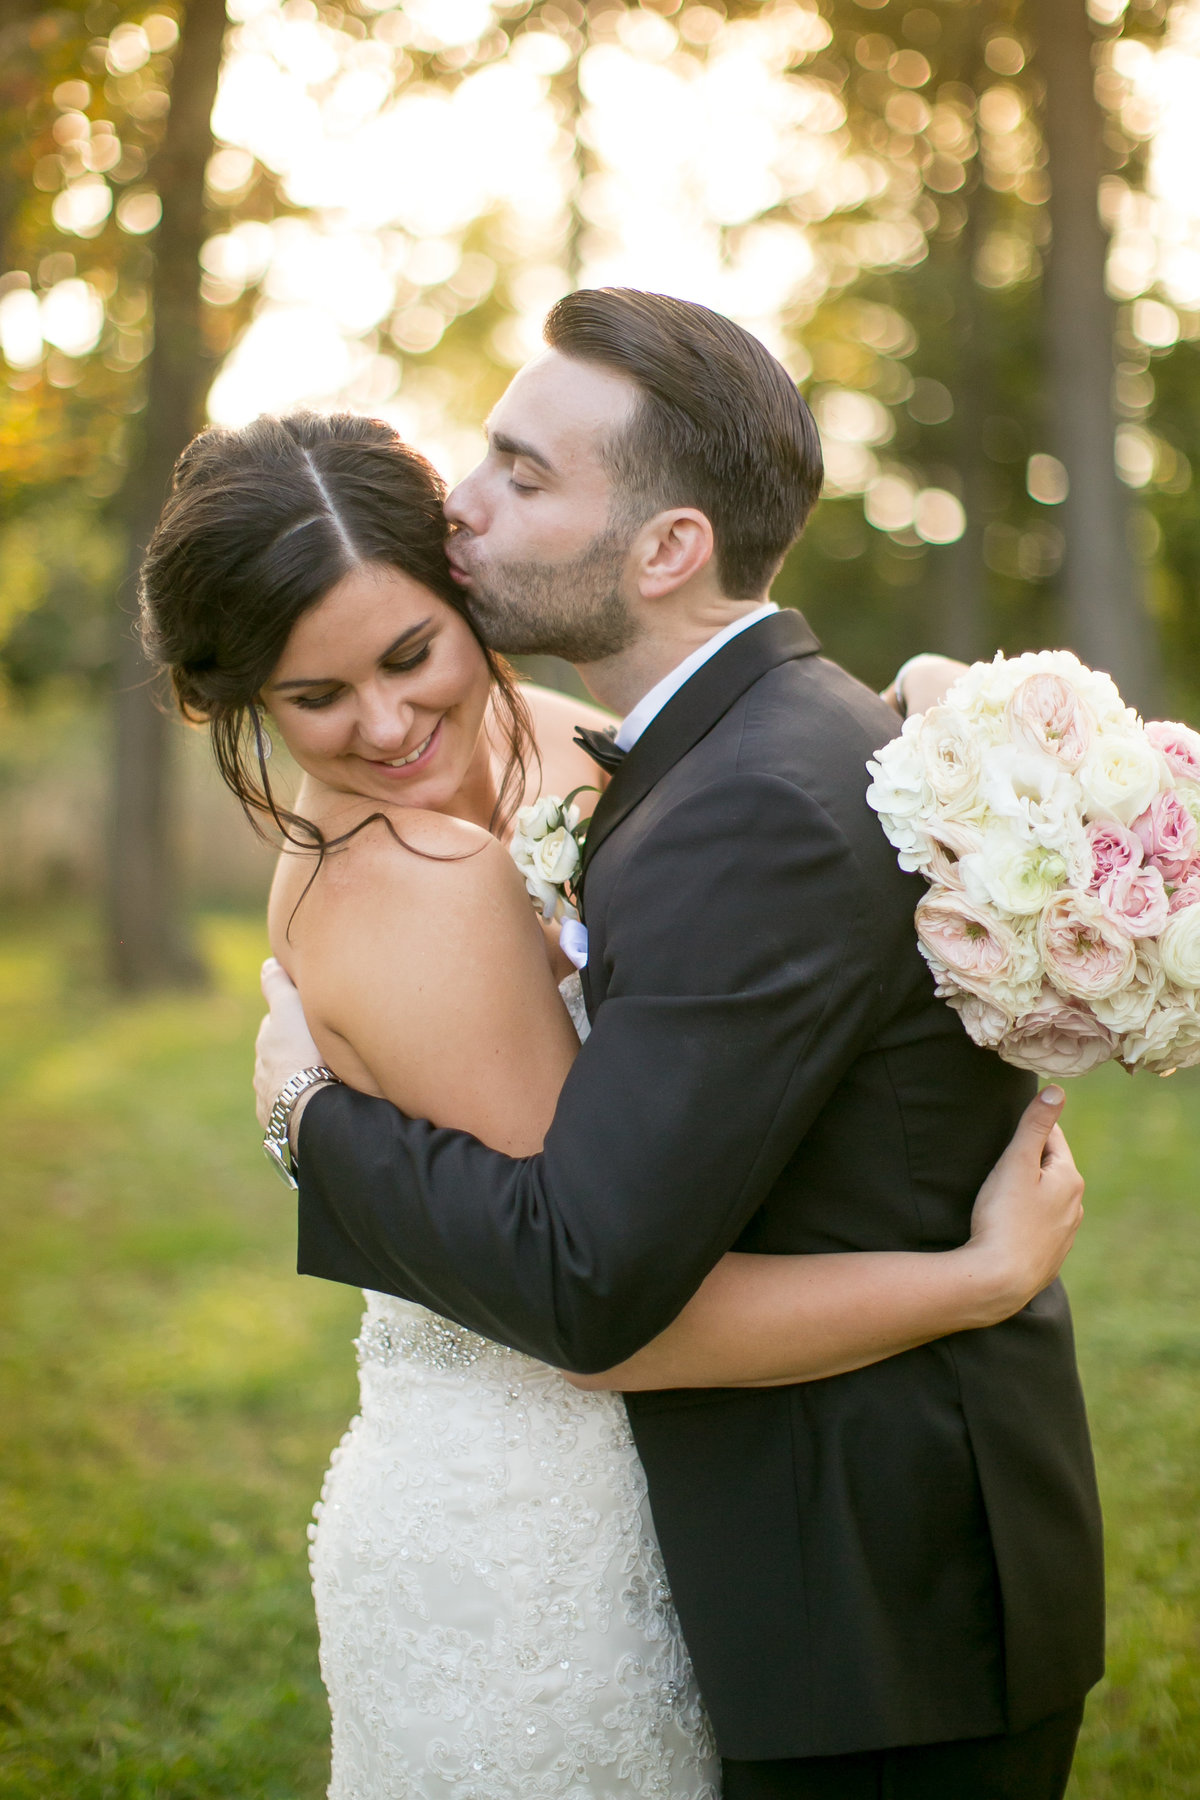 chicago wedding photographers, illinois photography, photographers, top (31 of 70)